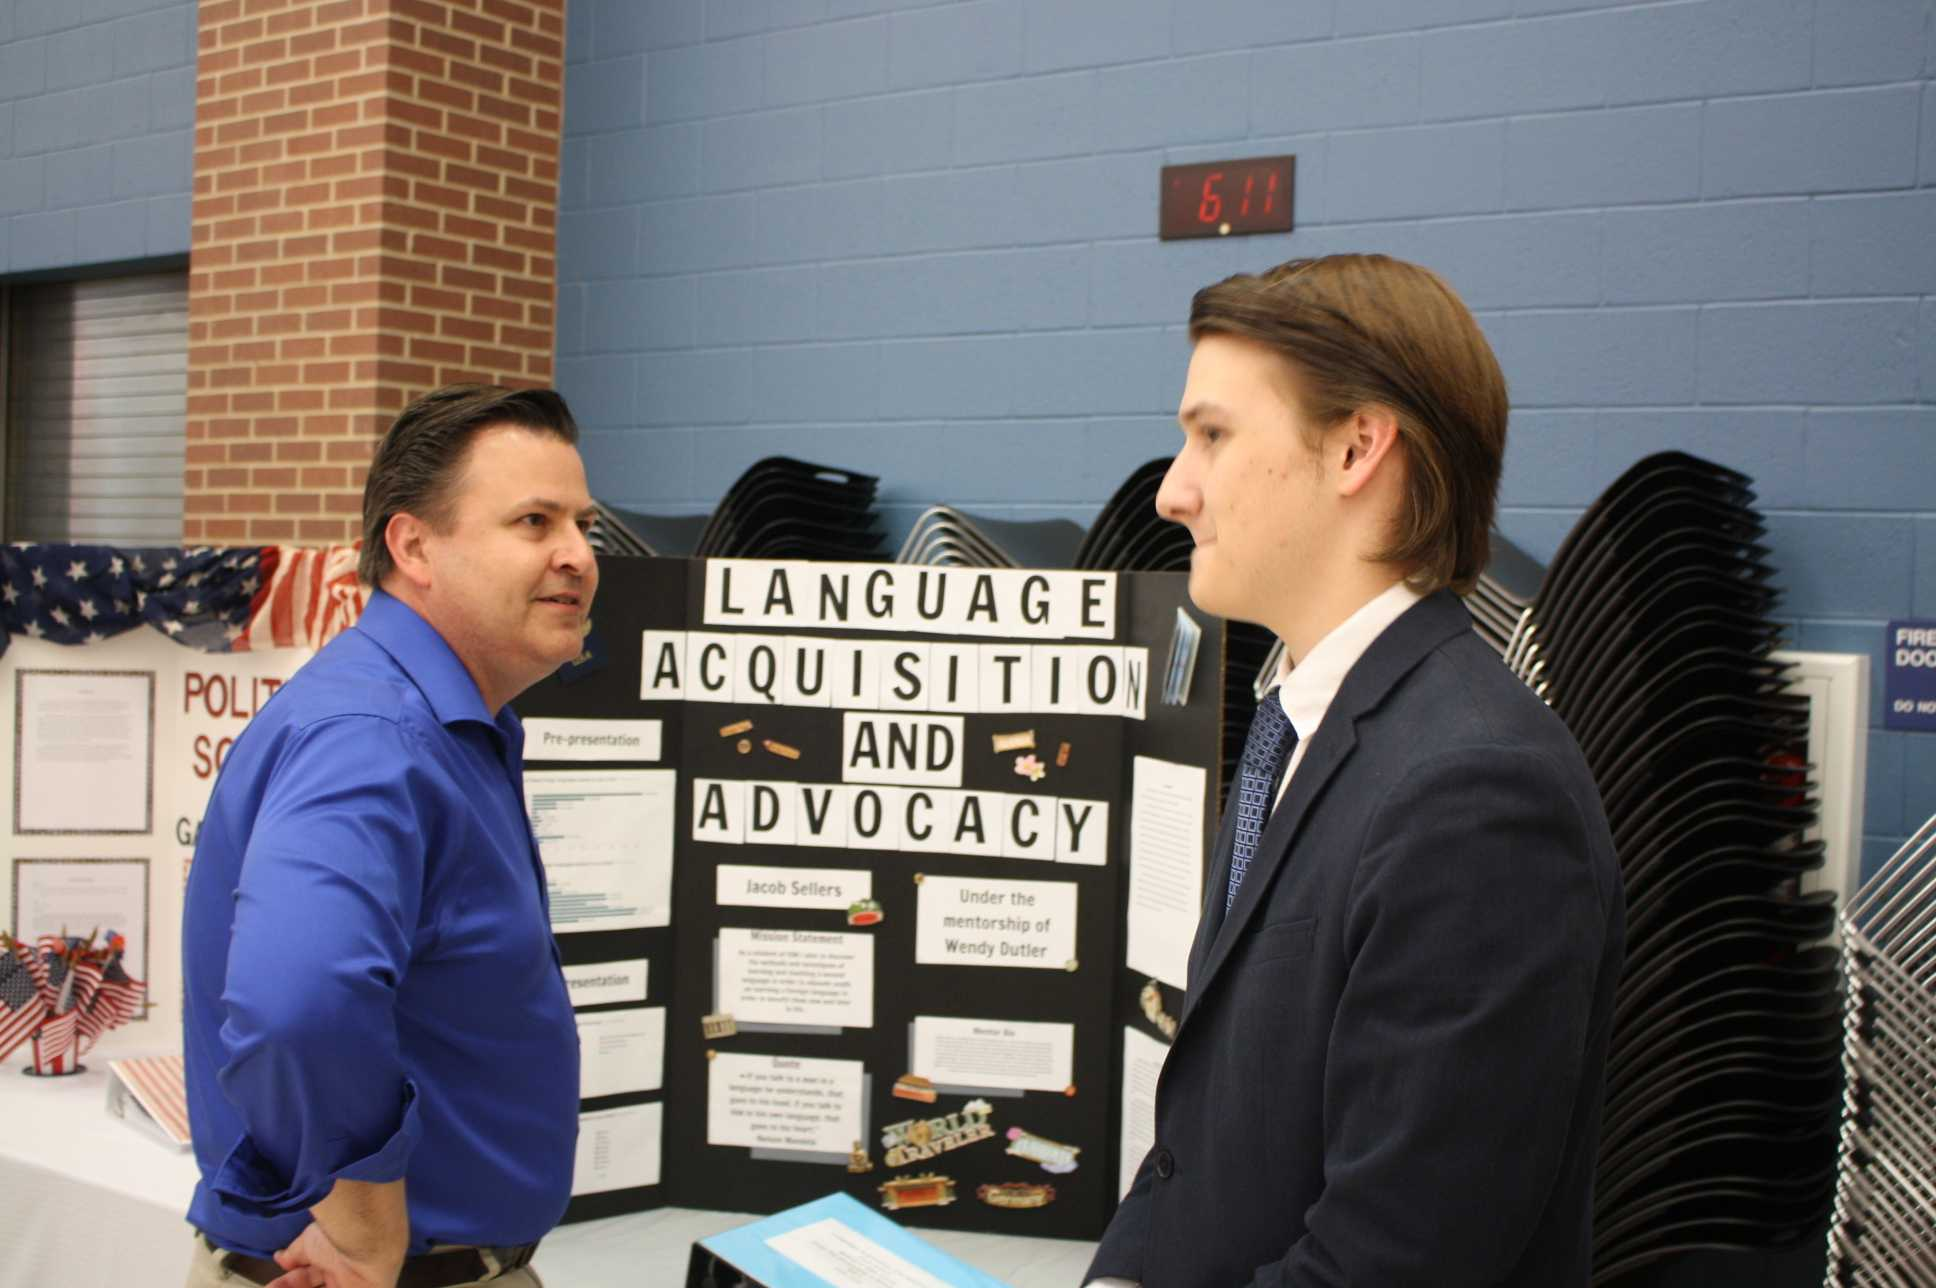 Jacob Sellers presents his study of language acquisition and advocacy with world history teacher John Lane.